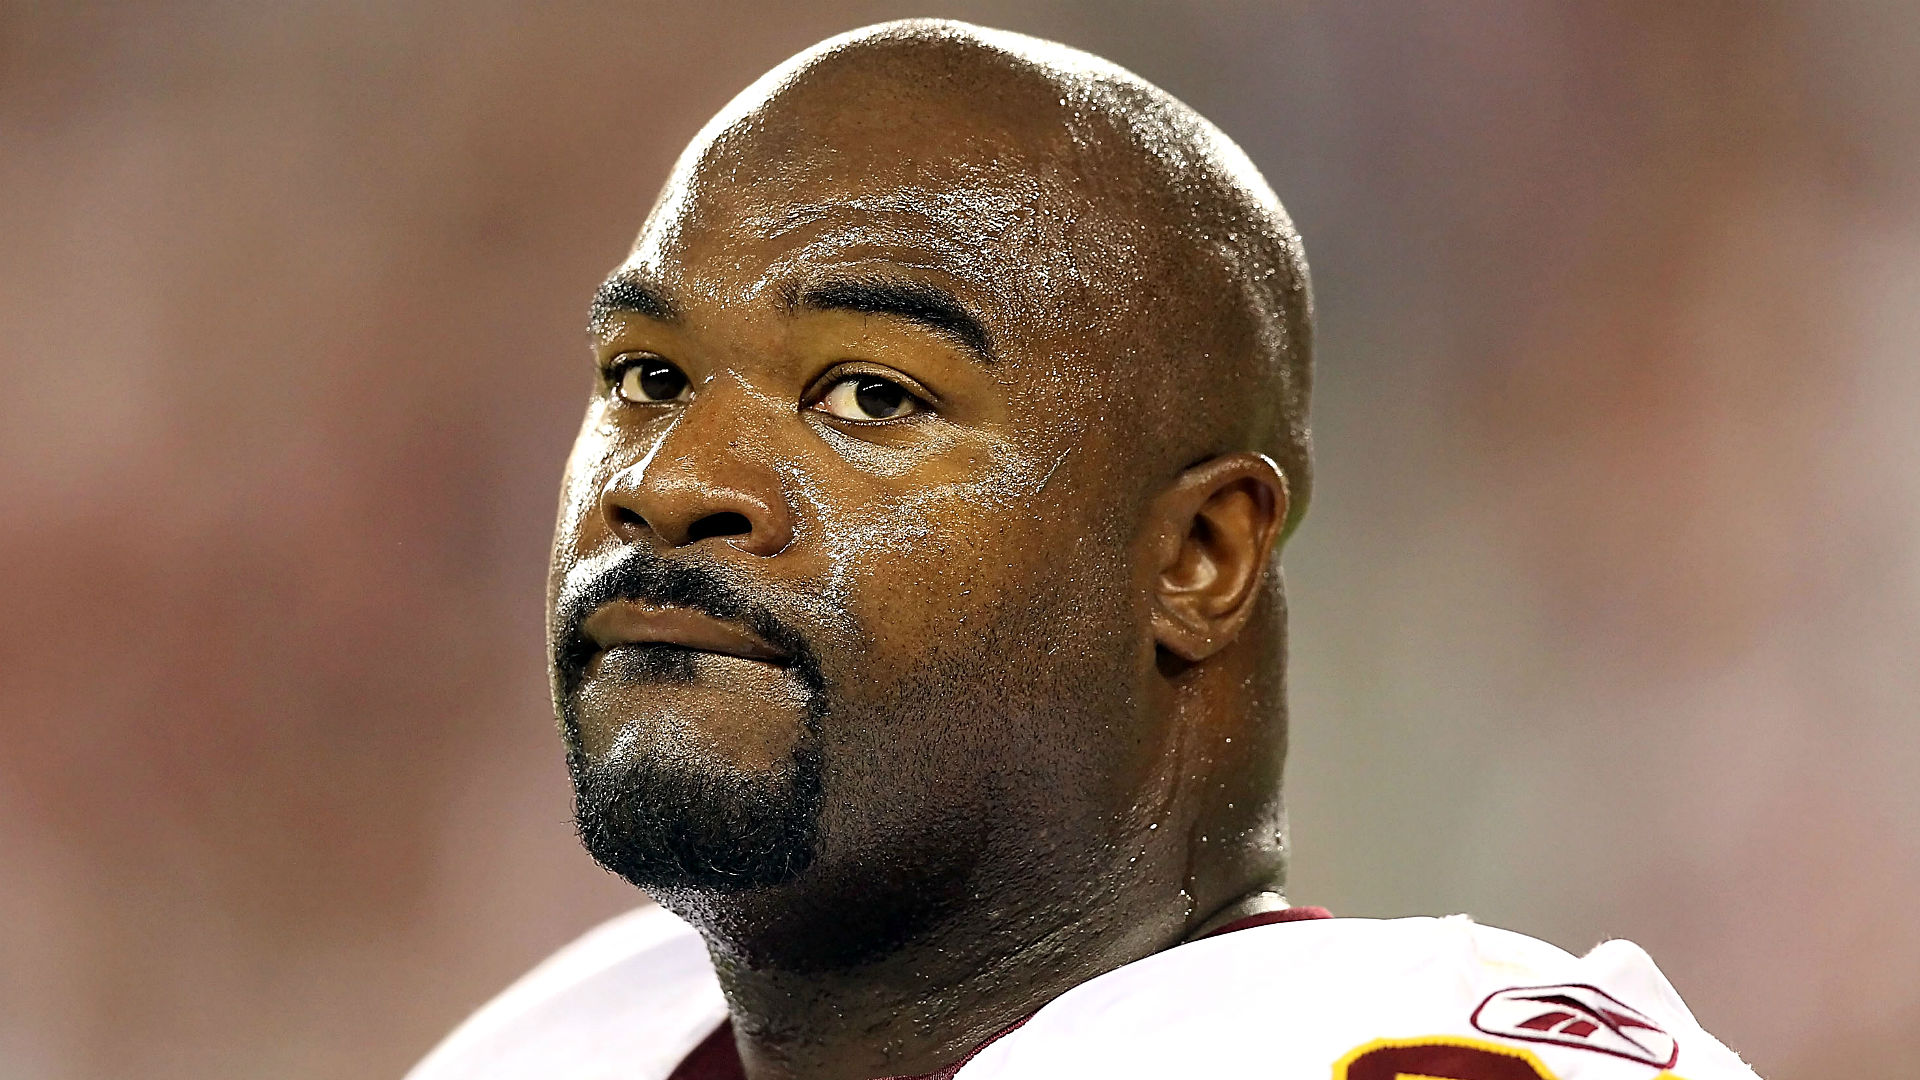 Titans coaches used 'Deliverance' scene to motivate Albert Haynesworth